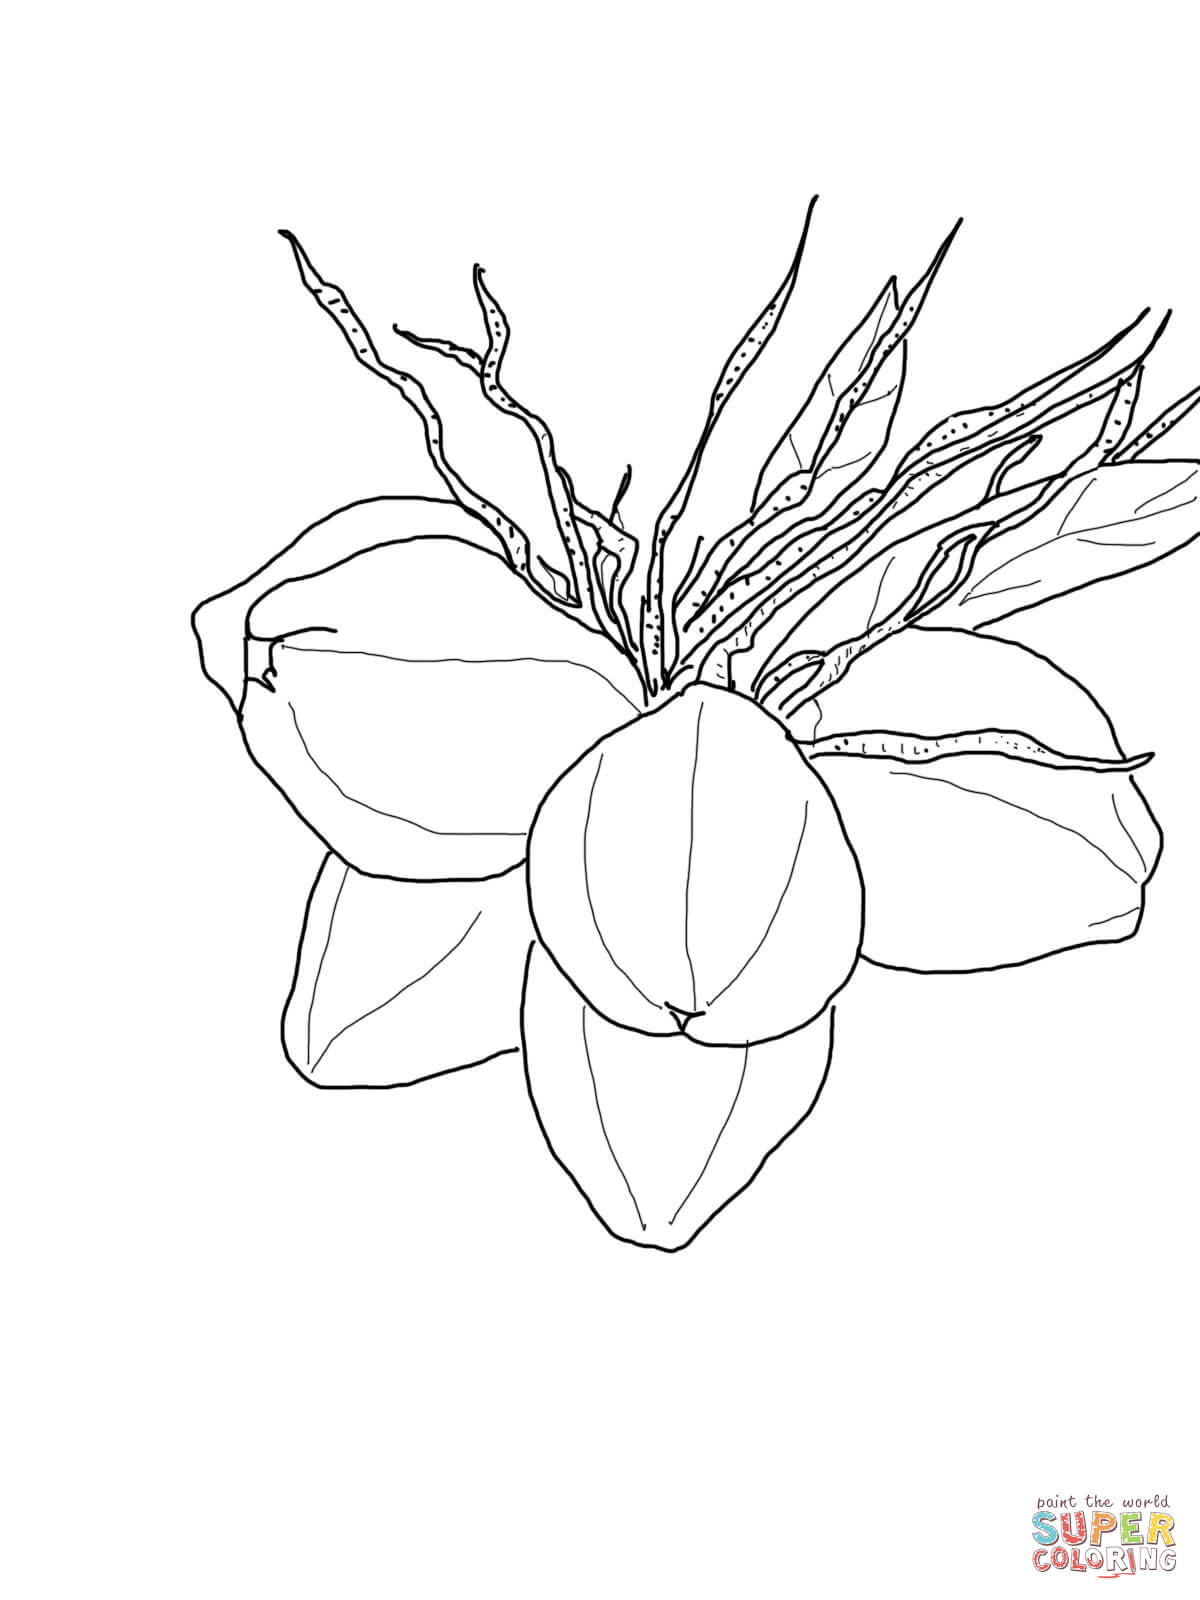 coconut coloring pages - photo#27